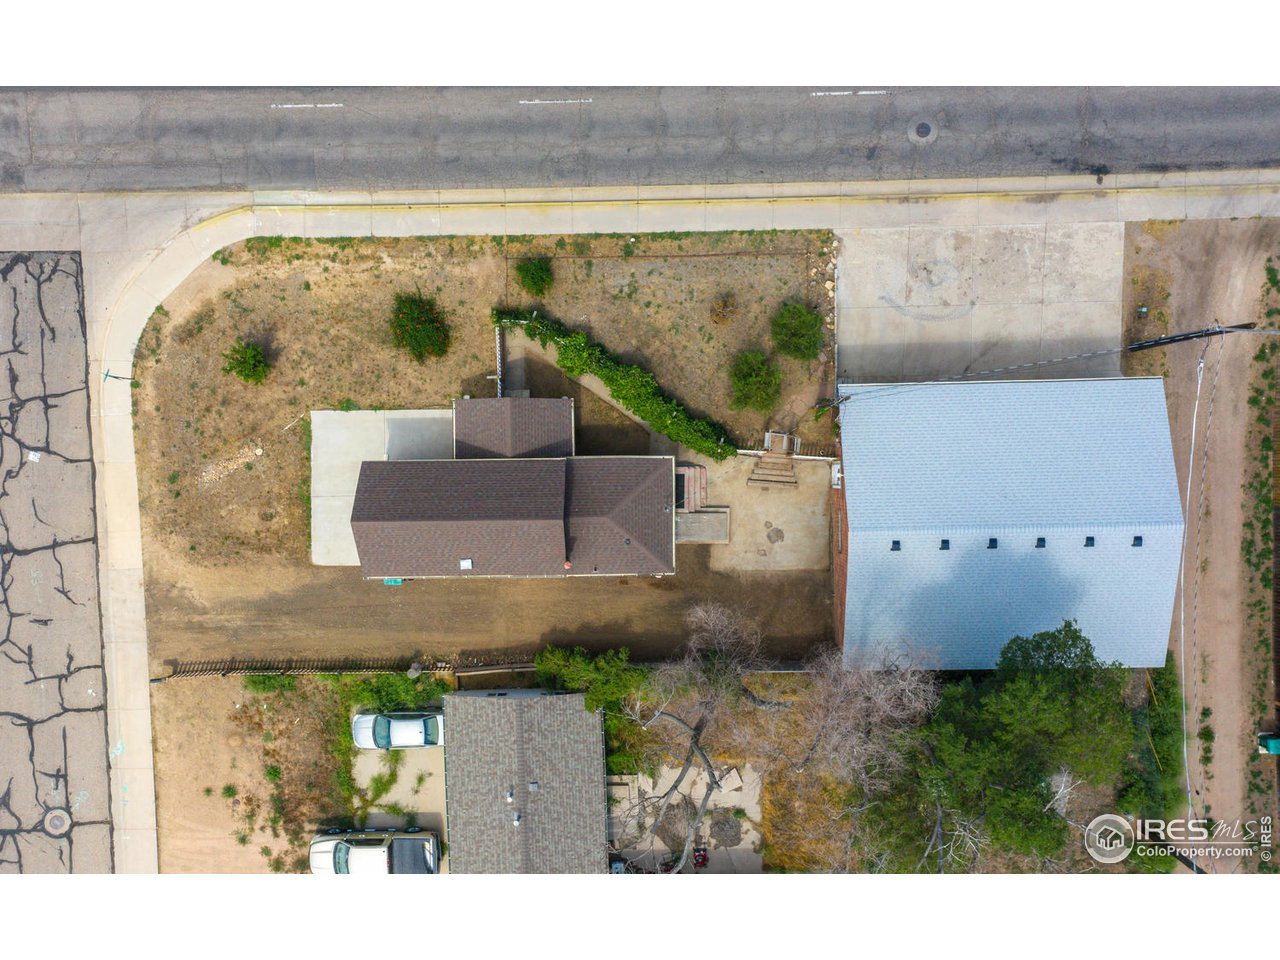 Overhead view of lot